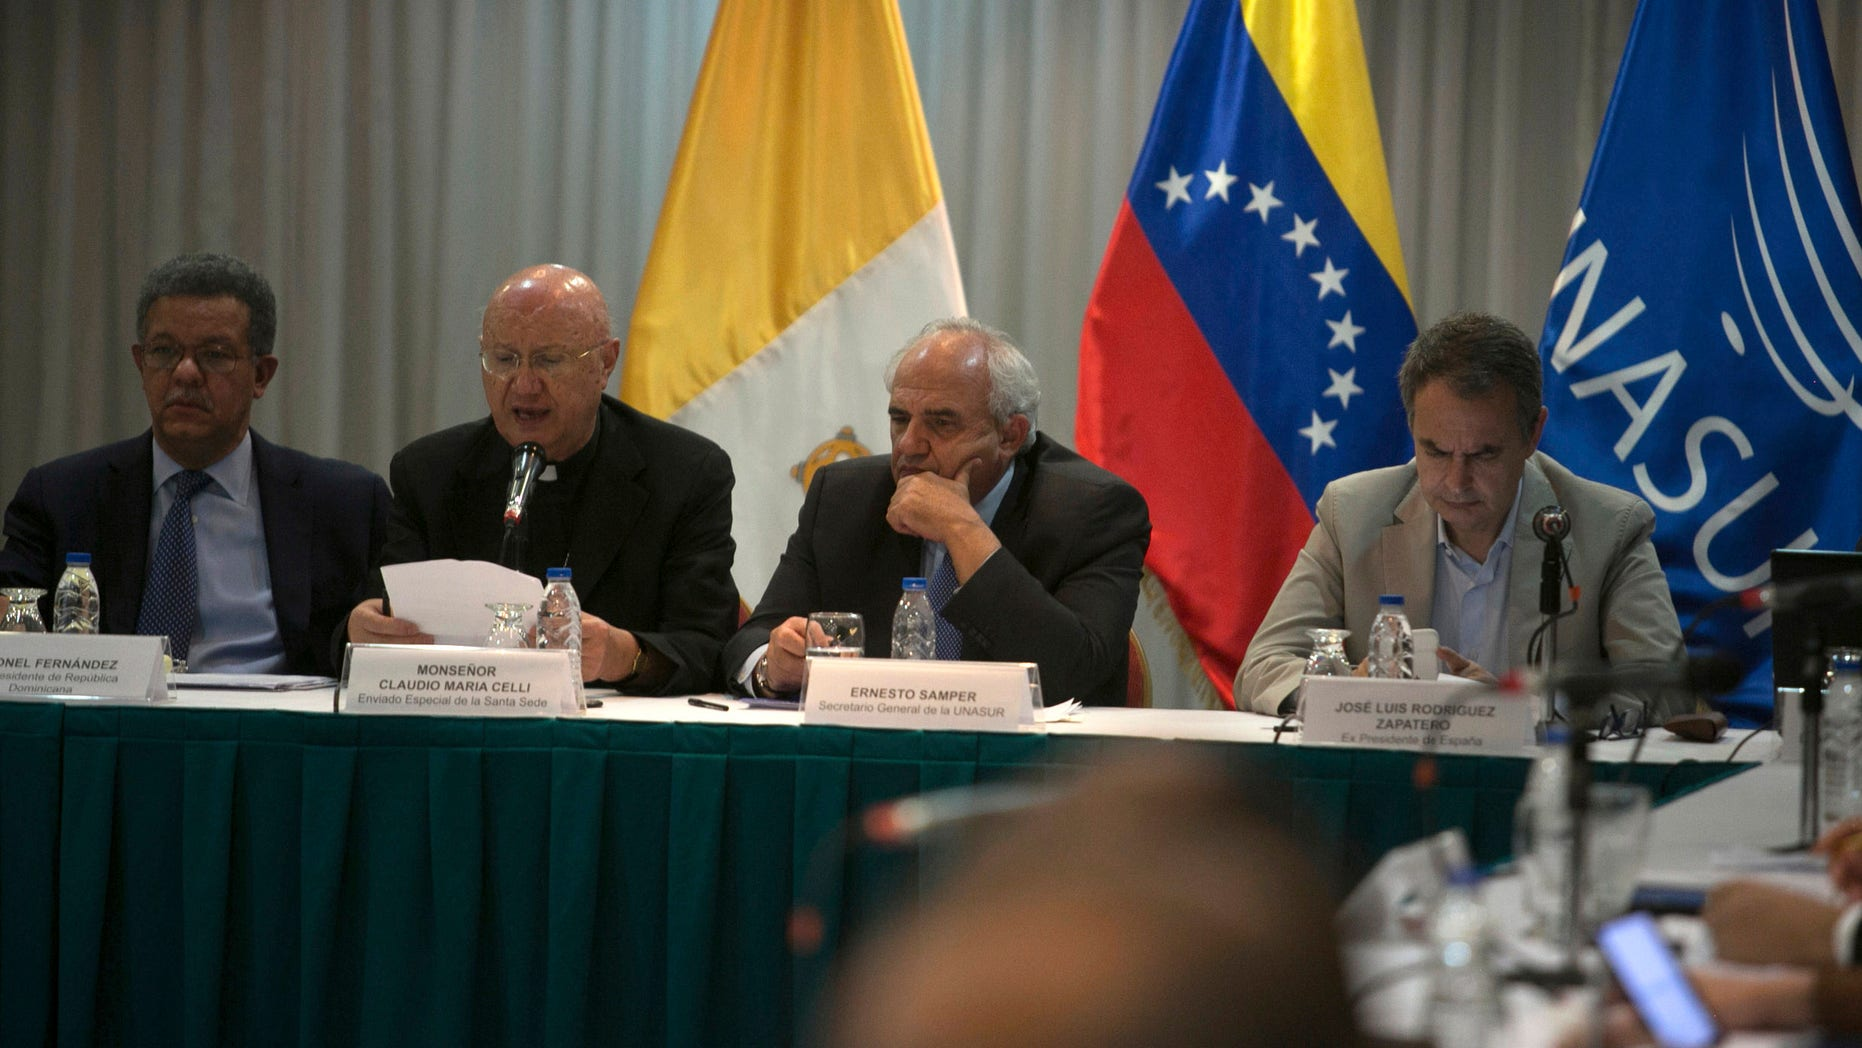 International mediators, from left to right, Dominican Republic's former President Leonel Fernandez, Vatican envoy Archbishop Claudio Maria Celli, Colombian former President Ernesto Samper, and Spain's former Prime Minister Jose Luis Rodriguez Zapatero, sit at the dialogue table between Venezuela's government and its opposition, in Caracas, Venezuela, Friday, Nov, 11 , 2016. The government and the opposition meet on Friday with international mediators to assess the progress of talks aimed at defusing the political crisis in Venezuela following the suspension of the referendum revoking Venezuelan President Nicolas Maduro's term. (AP Photo/Alejandro Cegarra)